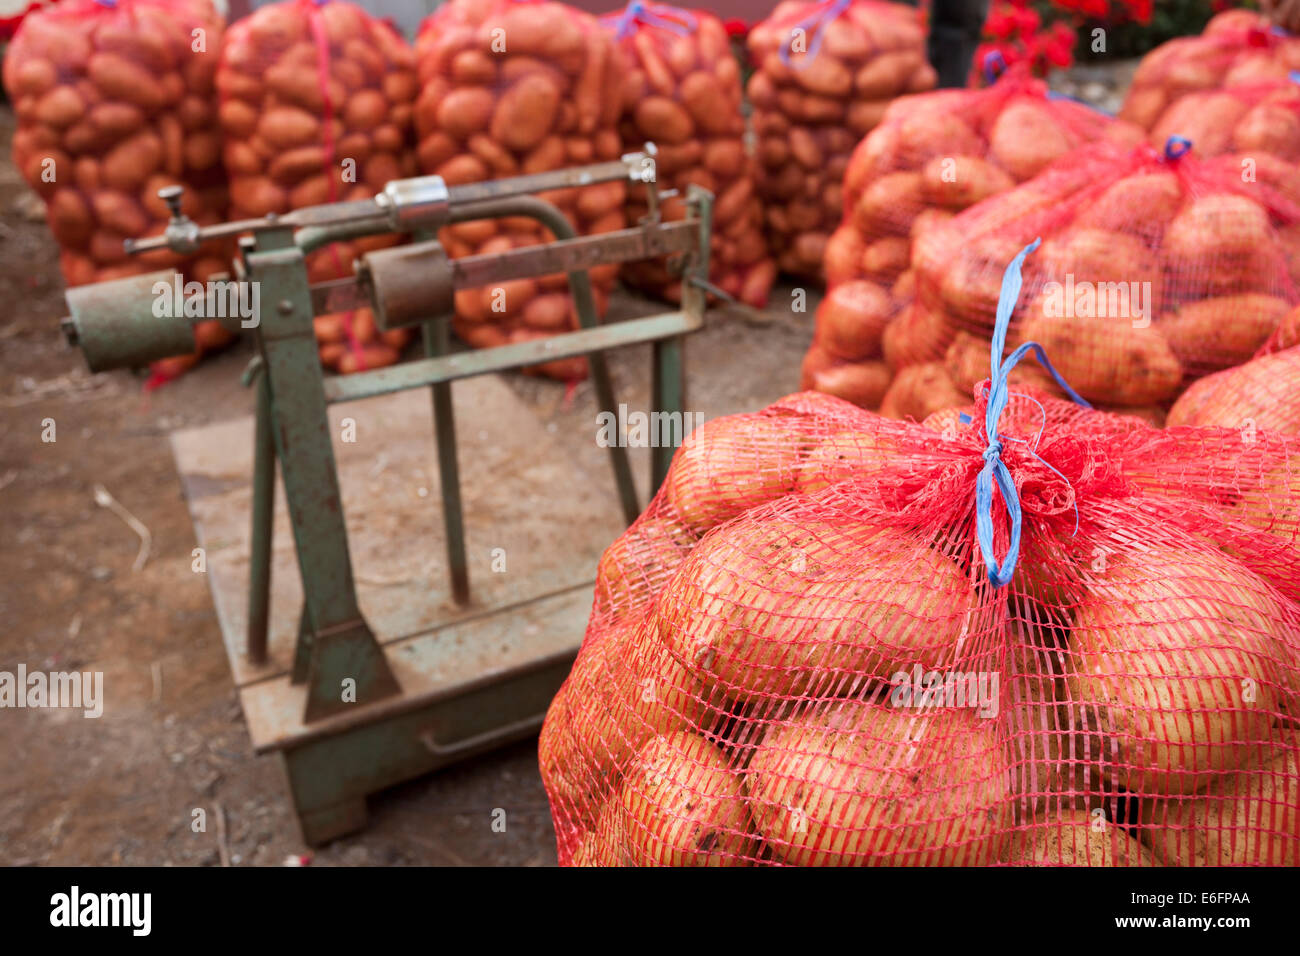 Potatoes in leno weave sacks ready for sale to a wholesaler's agent stand near a weighing scale. - Stock Image